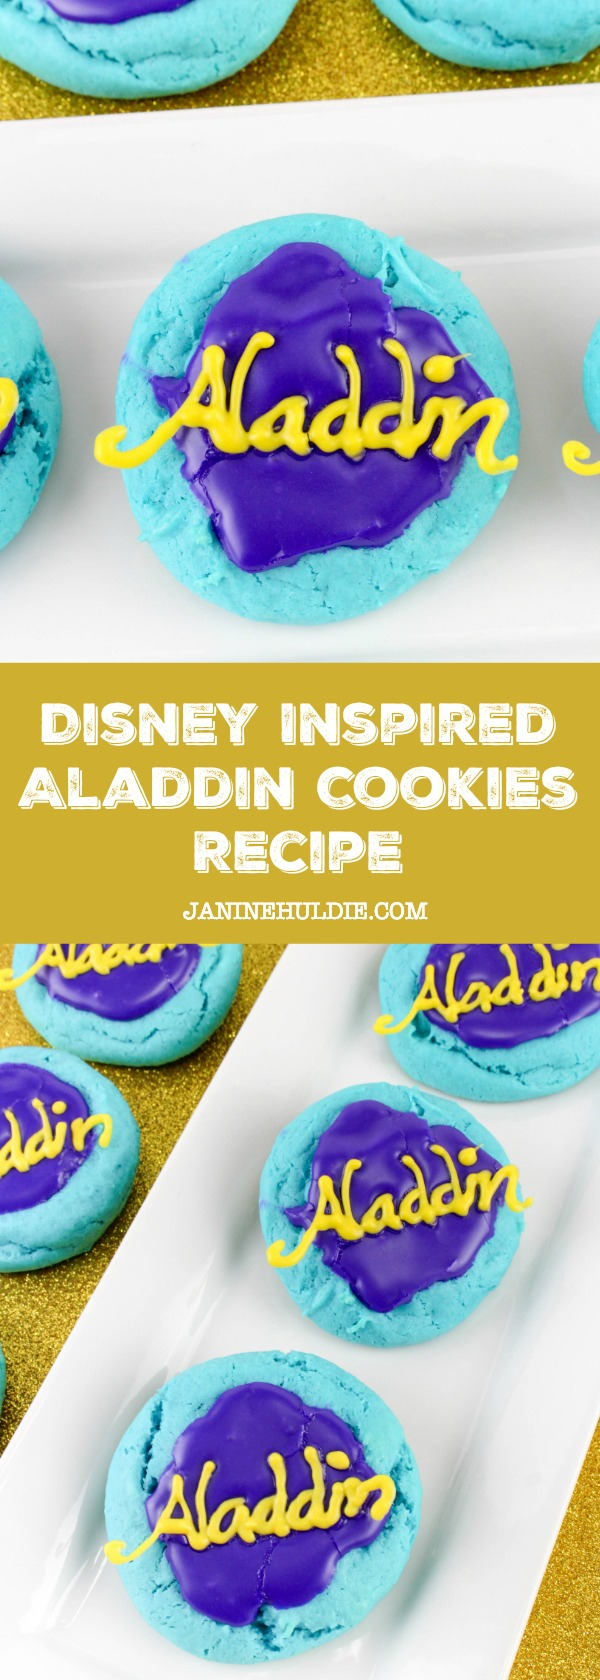 Disney Inspired Aladdin Cookies Recipe